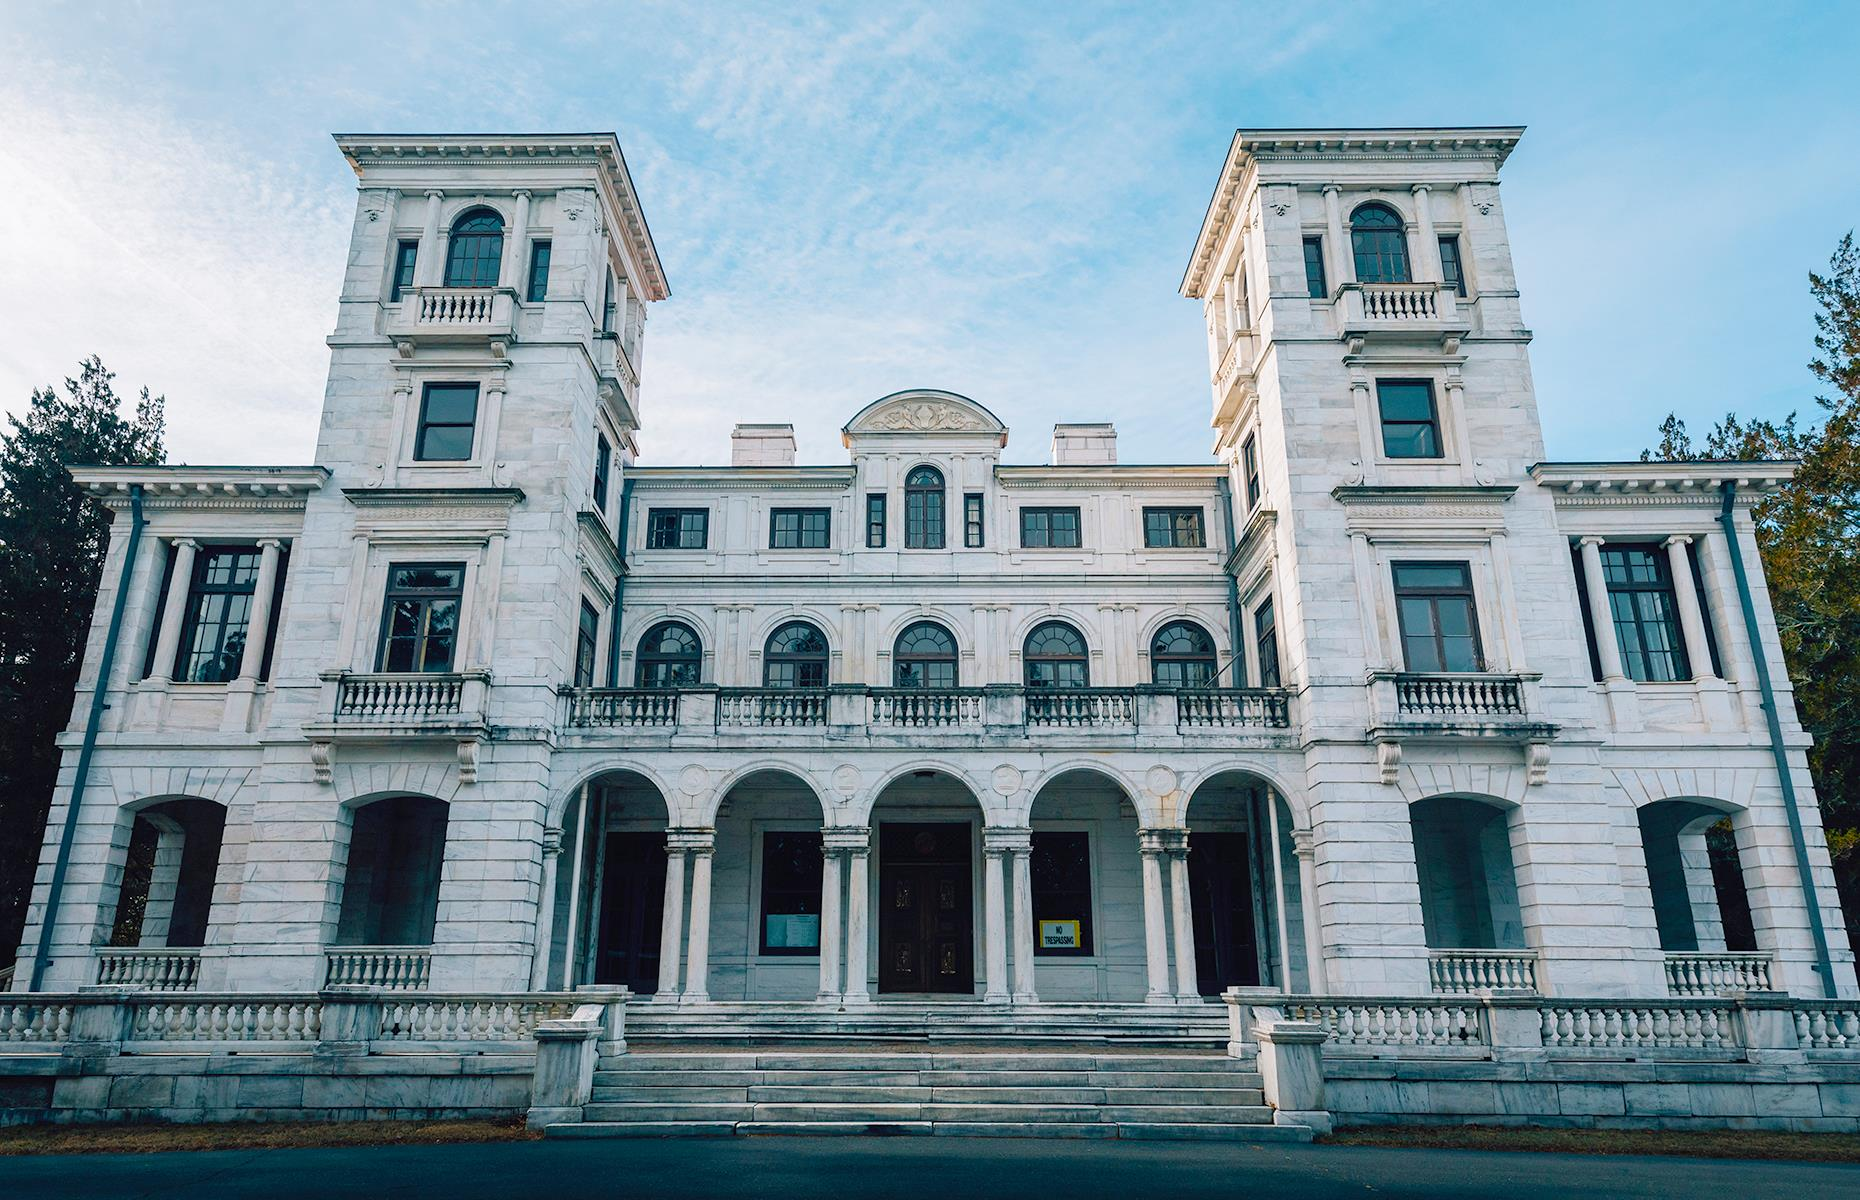 Slide 48 of 52: This stunning Italianate mansion retains much of its majesty even after years of abandonment. It dates back to 1912, when railroad heavyweight James Dooley decided to build this marble confection for his wife Sally May. The house has passed through many hands over the years, suffering periods of neglect and falling into disrepair. But despite some peeling paint and untamed areas of the garden, it's still a sight to behold today. The house currently remains open for private guided tours.